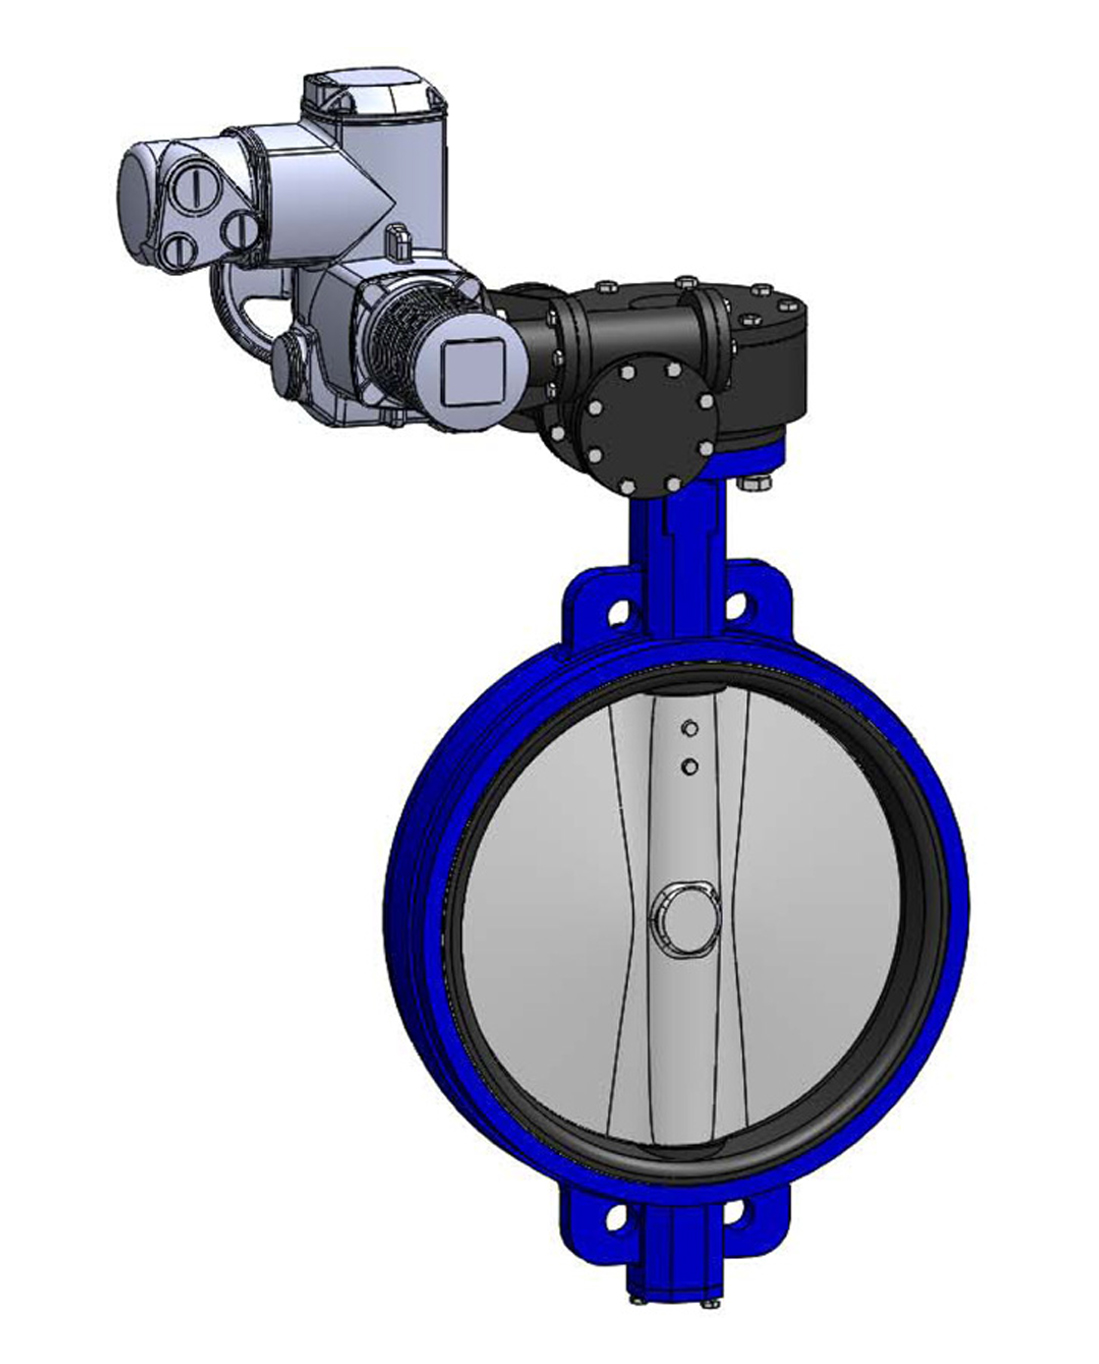 Wafer type butterfly valve PN10 – ductile iron body – ductile iron disc – AUMA electric operator